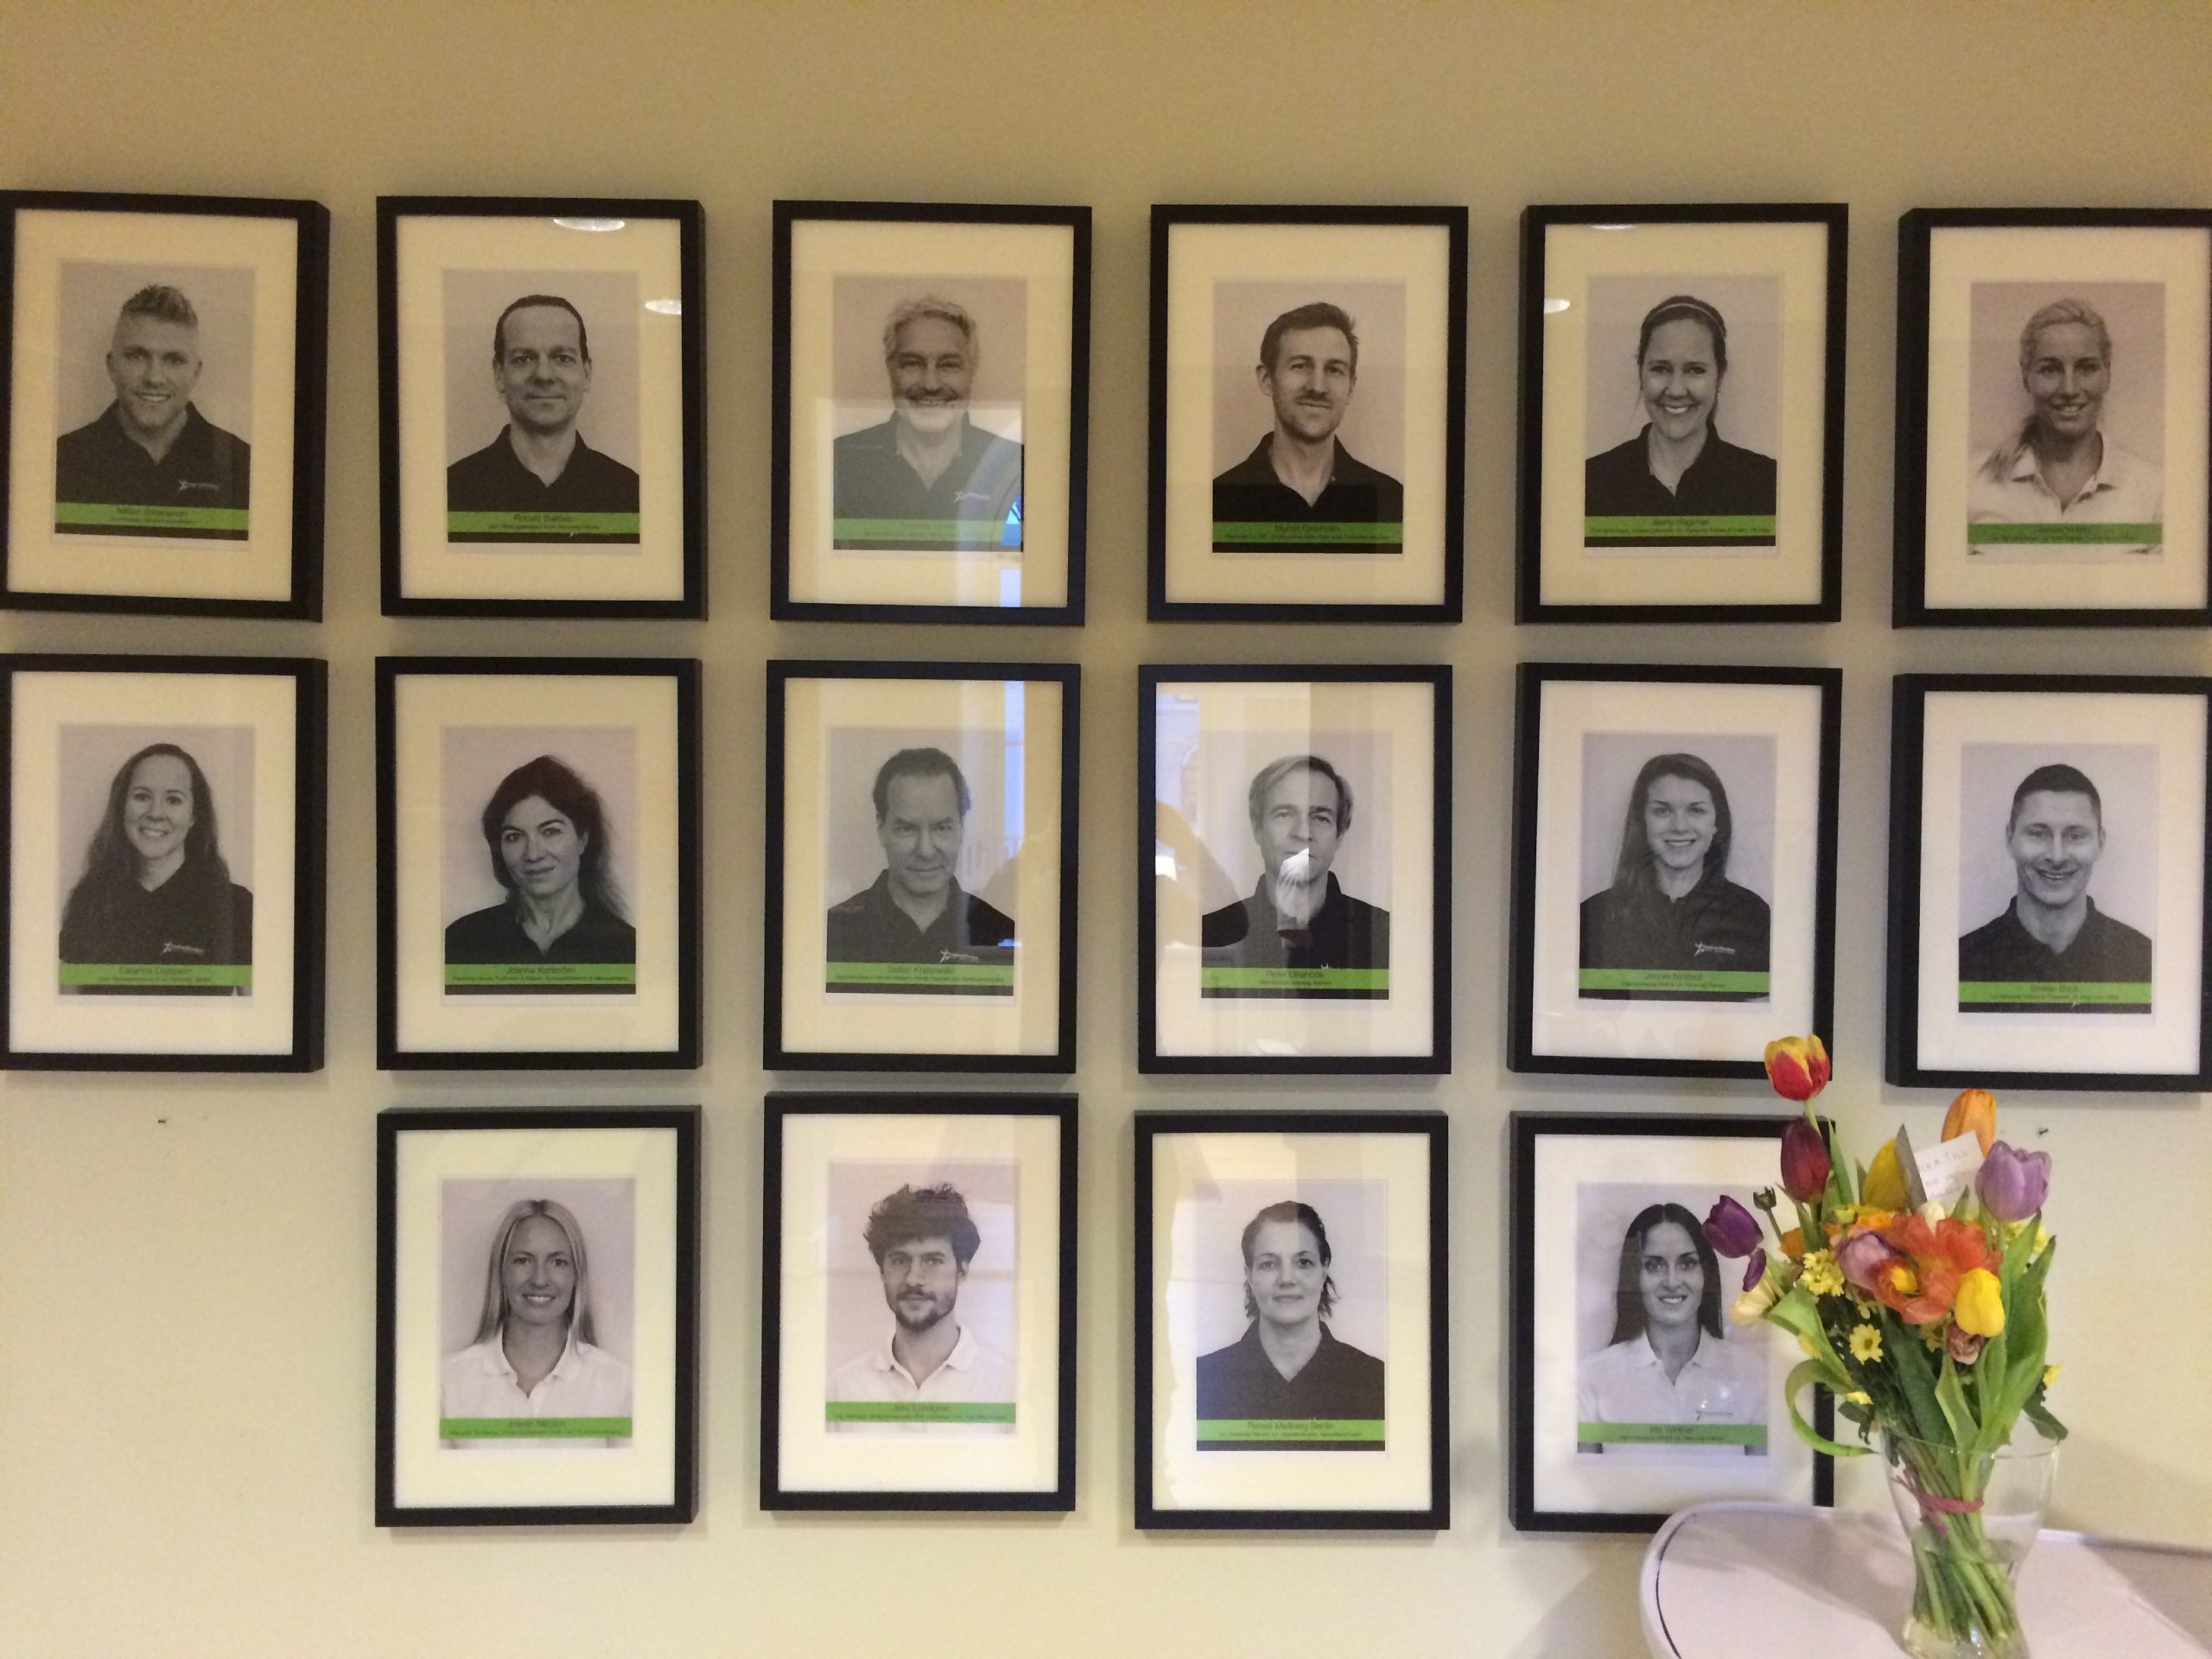 Wall of experts!